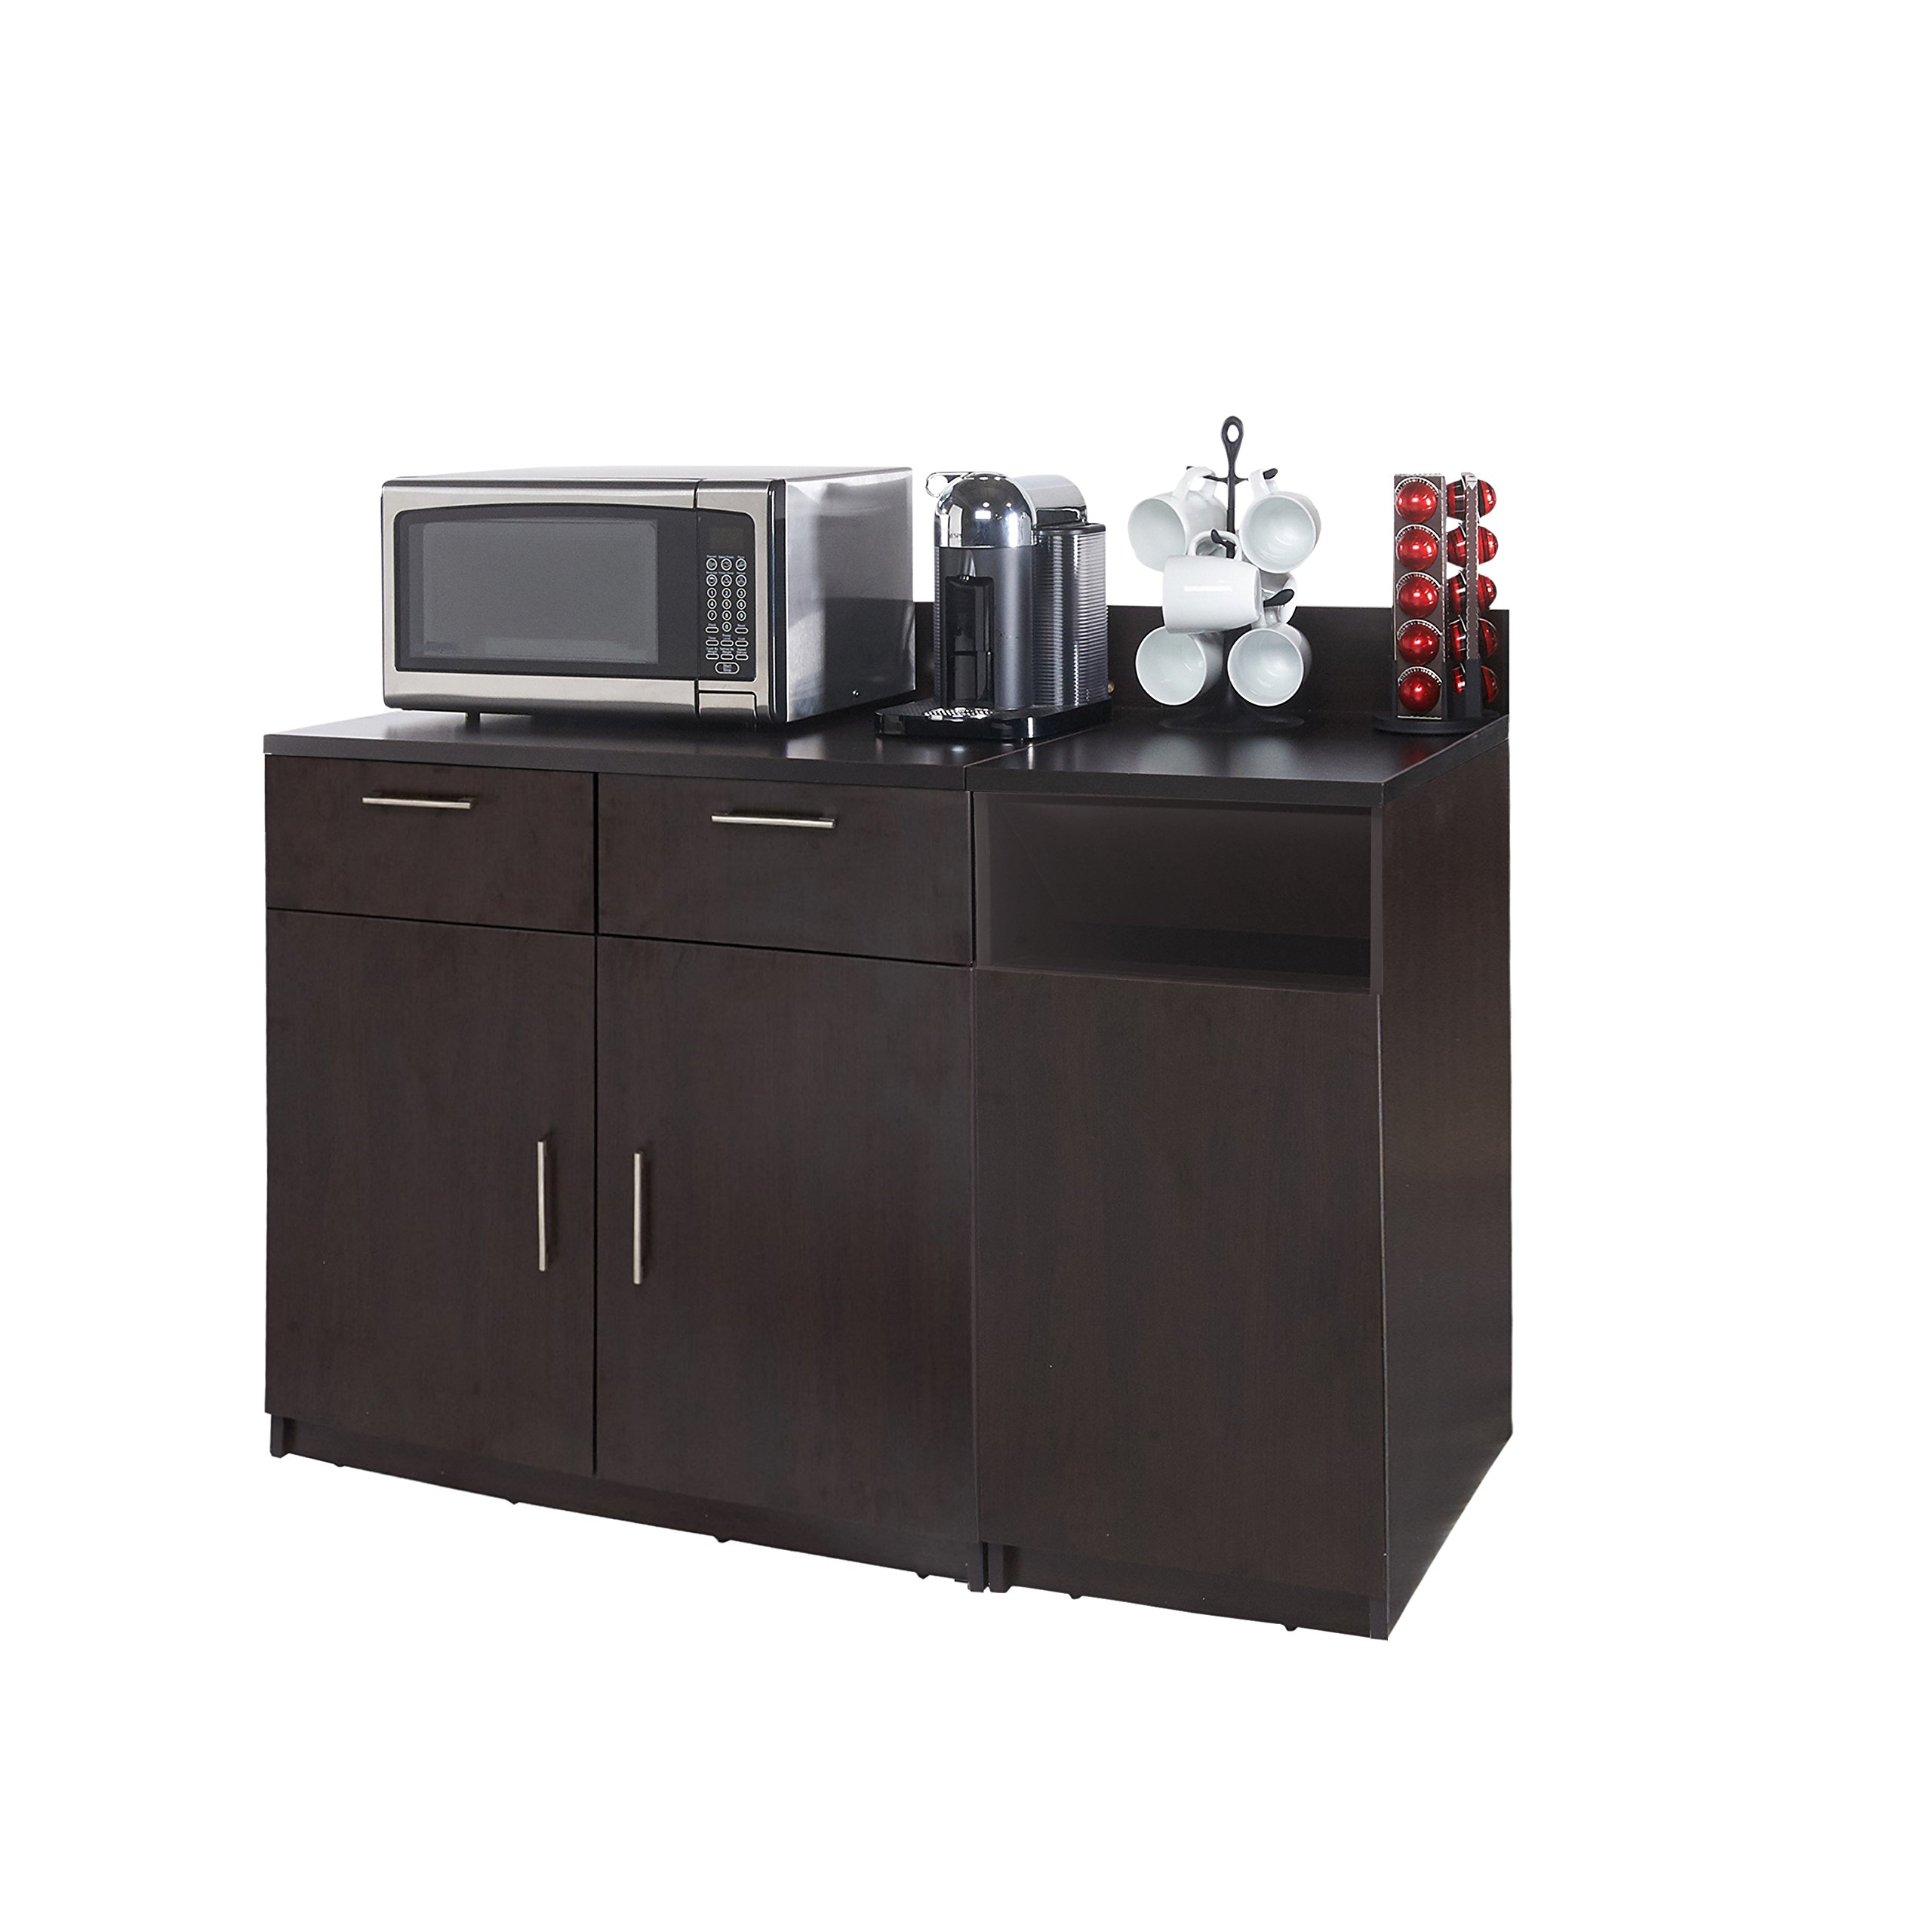 Coffee Kitchen Lunch Break Room Cabinets Model 4284 BREAKTIME 2 Piece Group Color Espresso - Factory Assembled (NOT RTA) Furniture Items ONLY.